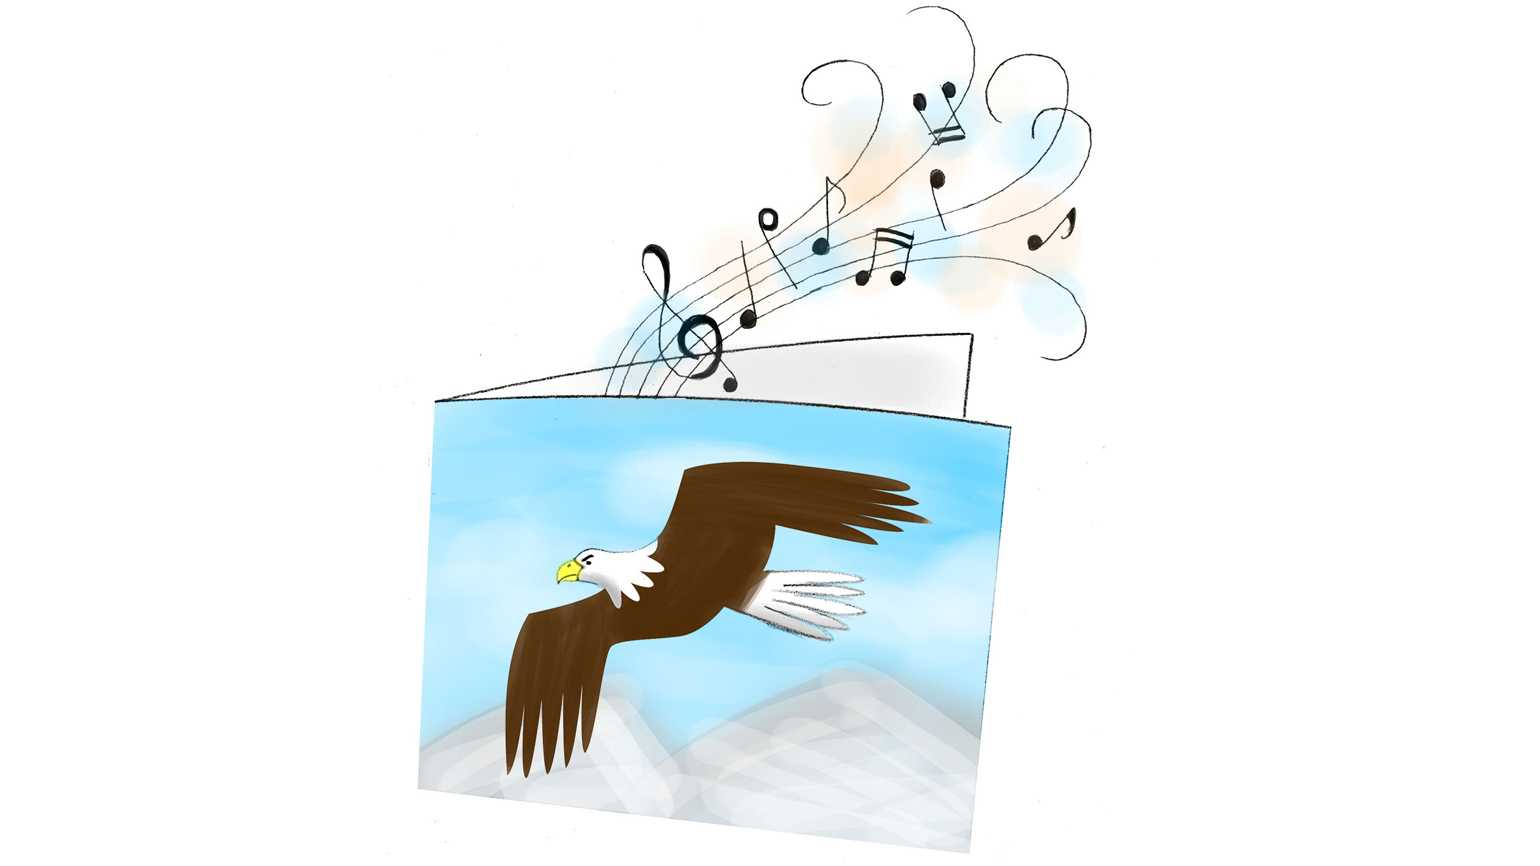 A greeting card with a soaring eagle on the cover. Music notes drift from the card.